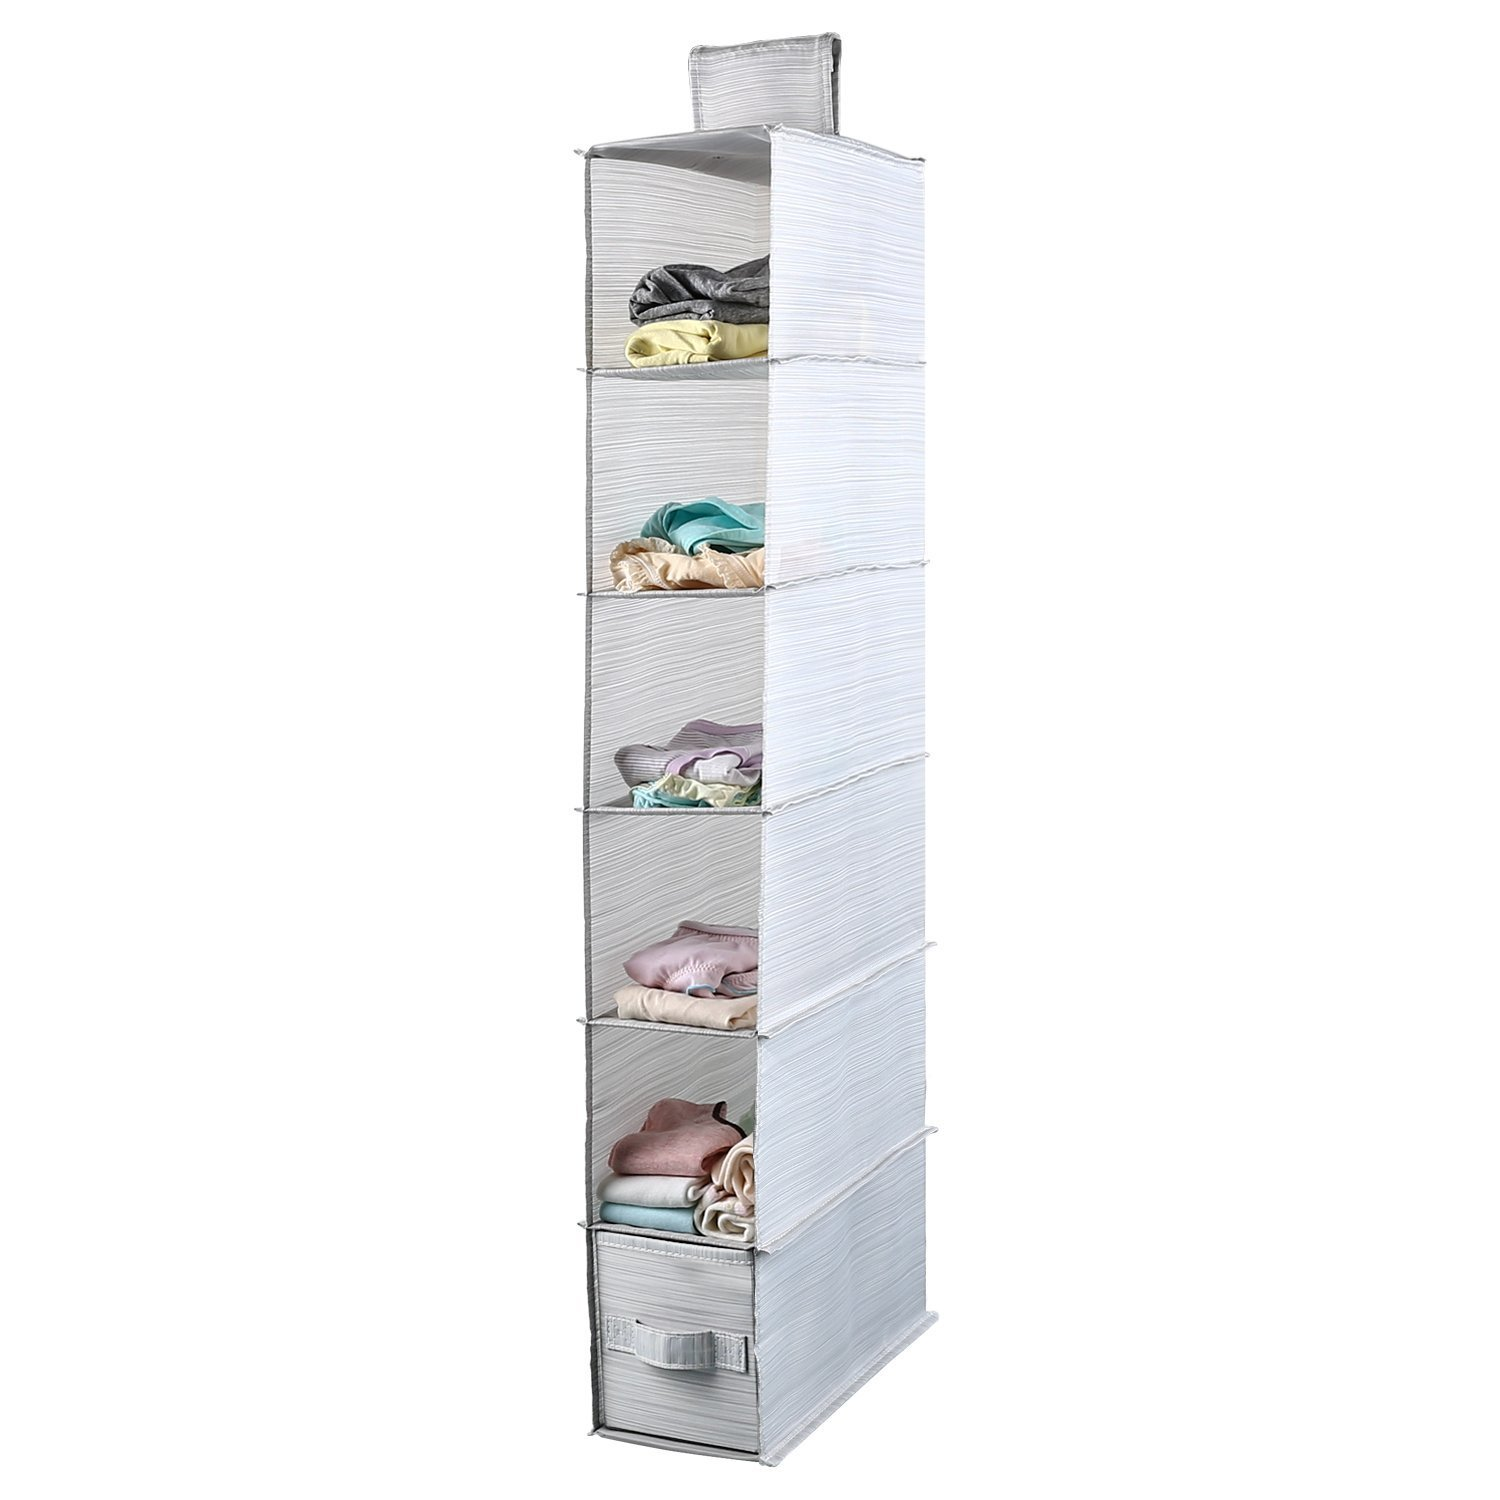 Mee'life Collapsible 6-shelf Hanging Closet Organizer with 1Drawer Thick Cardboard Boards Inside Suit for Clothes Sweaters Shoes Storage Hanging Wardrobe Storage Shelves Shoe Rack (Light Gray)